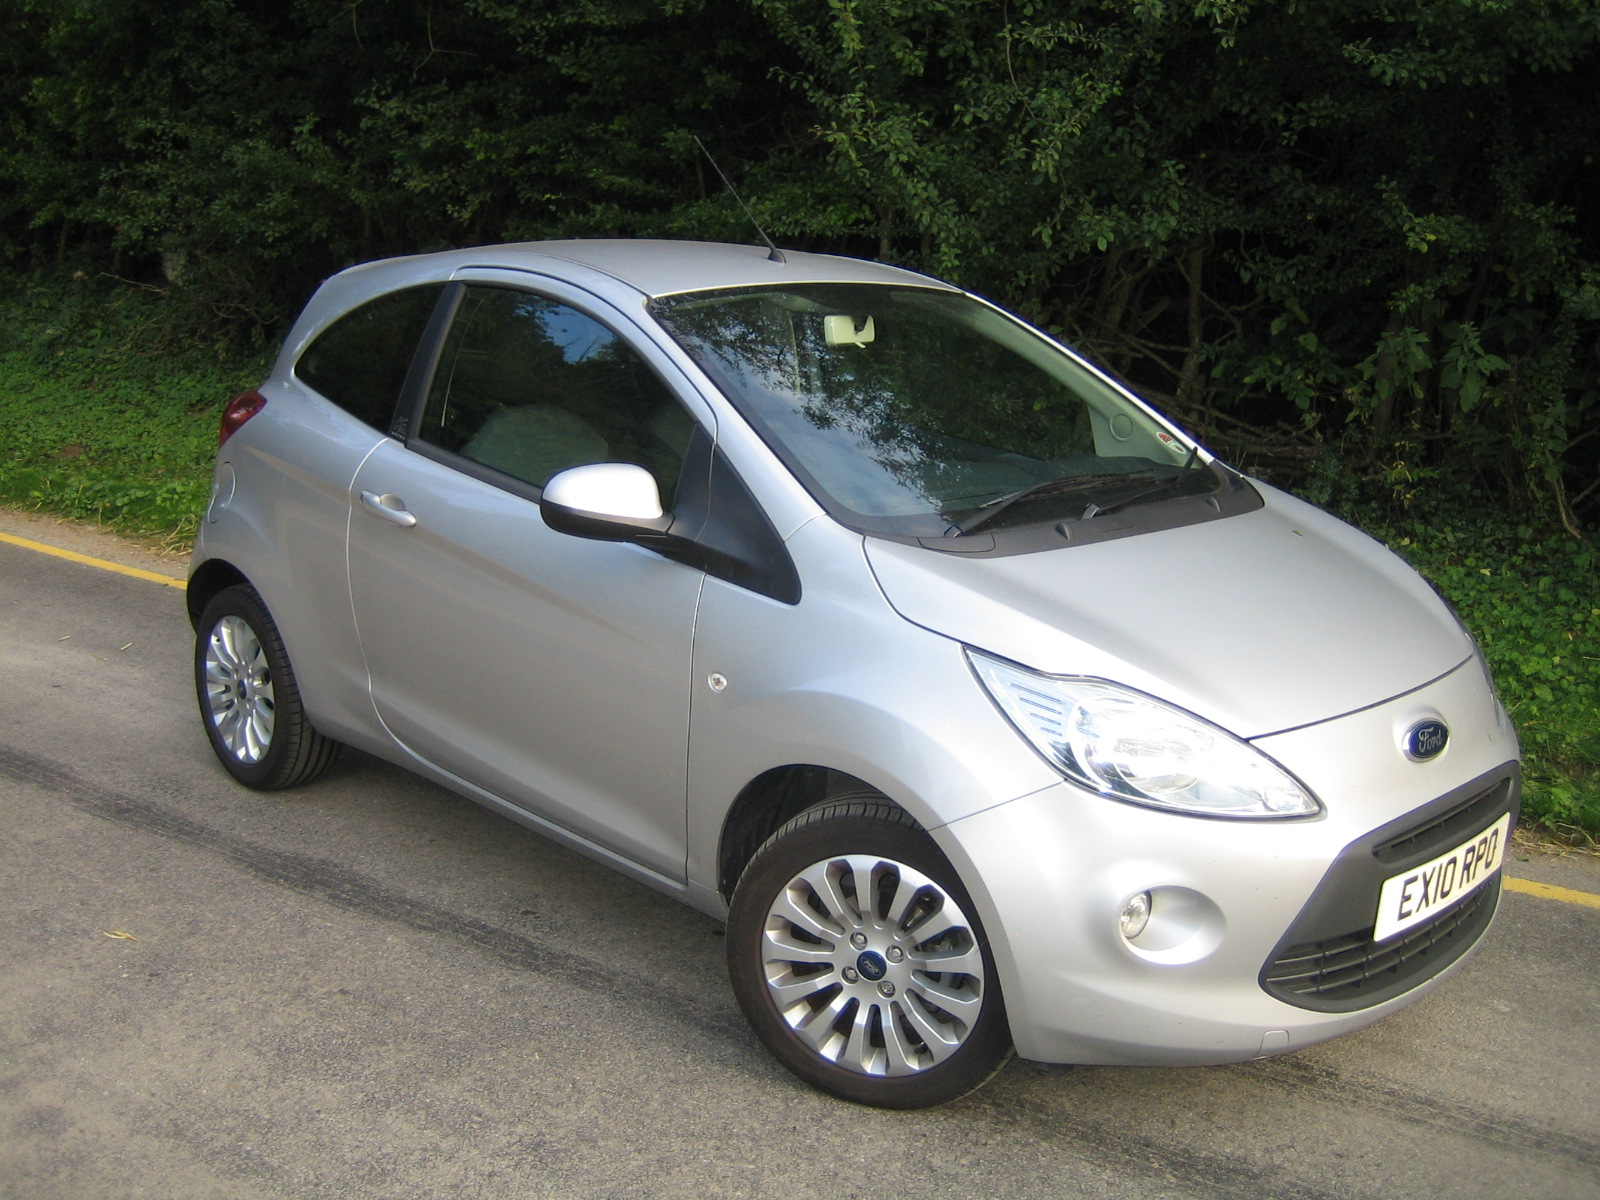 The Ford Ka Is Compact Easy To Drive Park And Just Live With